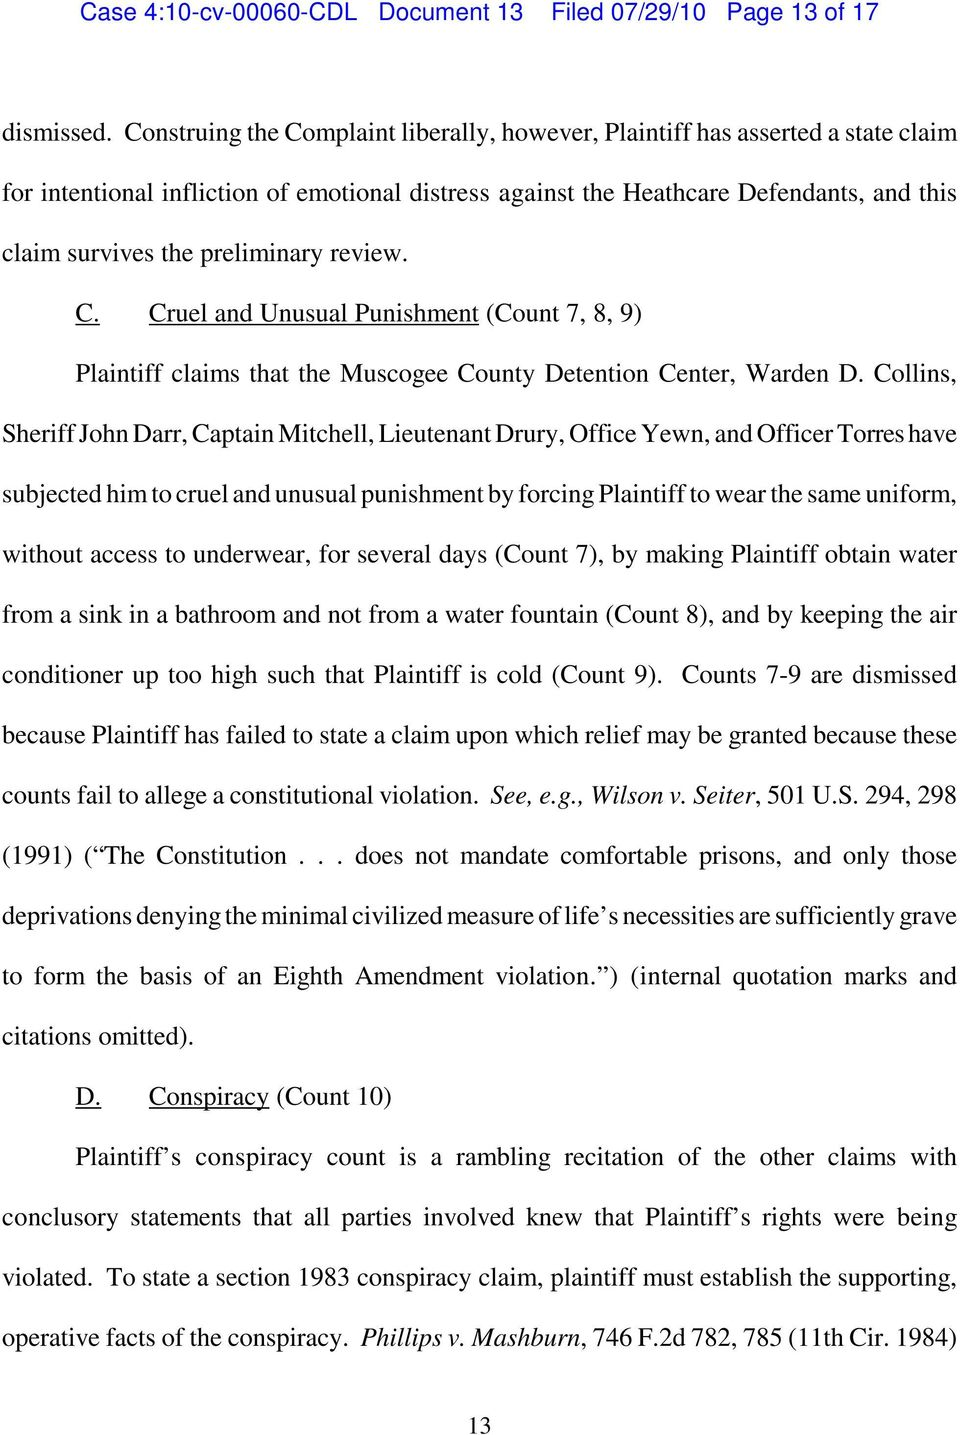 preliminary review. C. Cruel and Unusual Punishment (Count 7, 8, 9) Plaintiff claims that the Muscogee County Detention Center, Warden D.